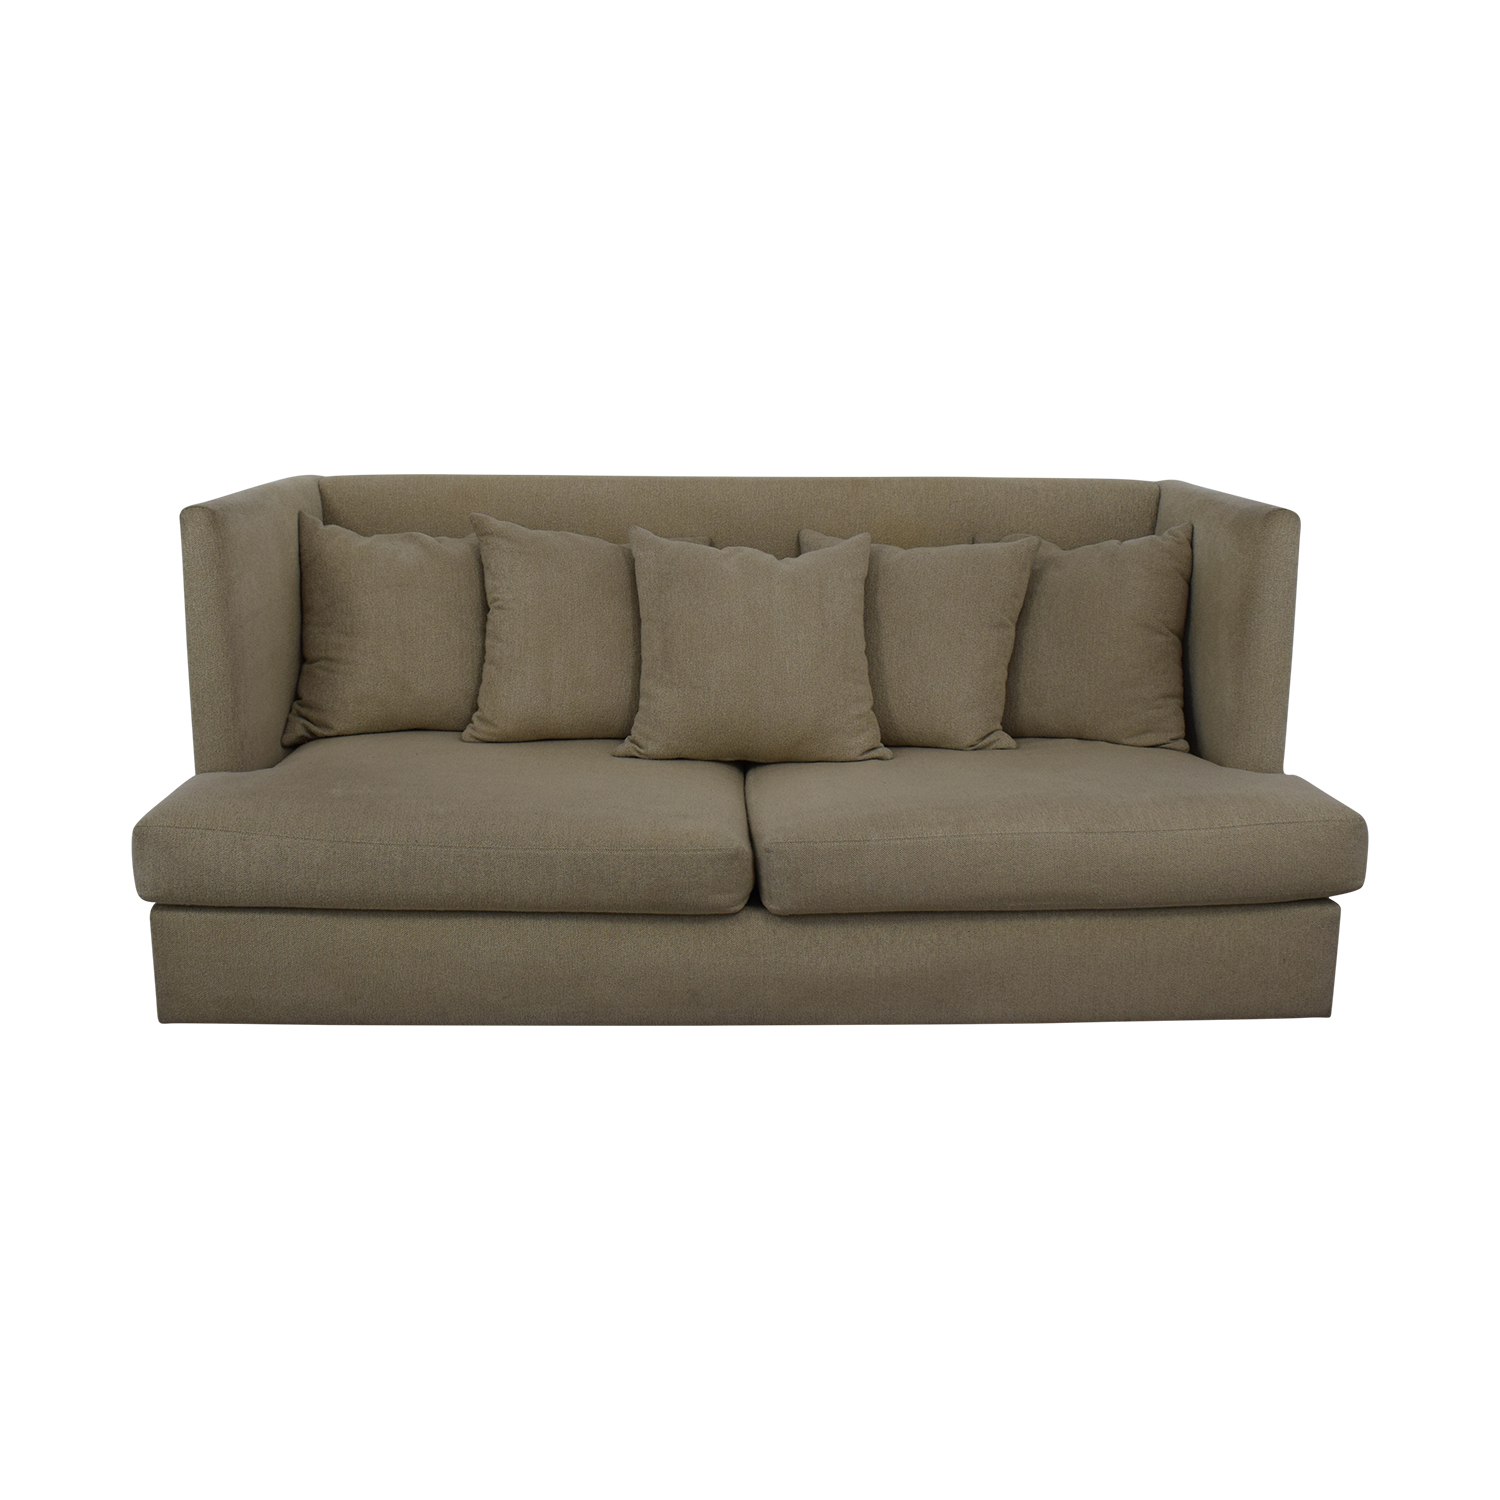 Crate & Barrel Crate & Barrel Milo Baughman Shelter Sofa dimensions